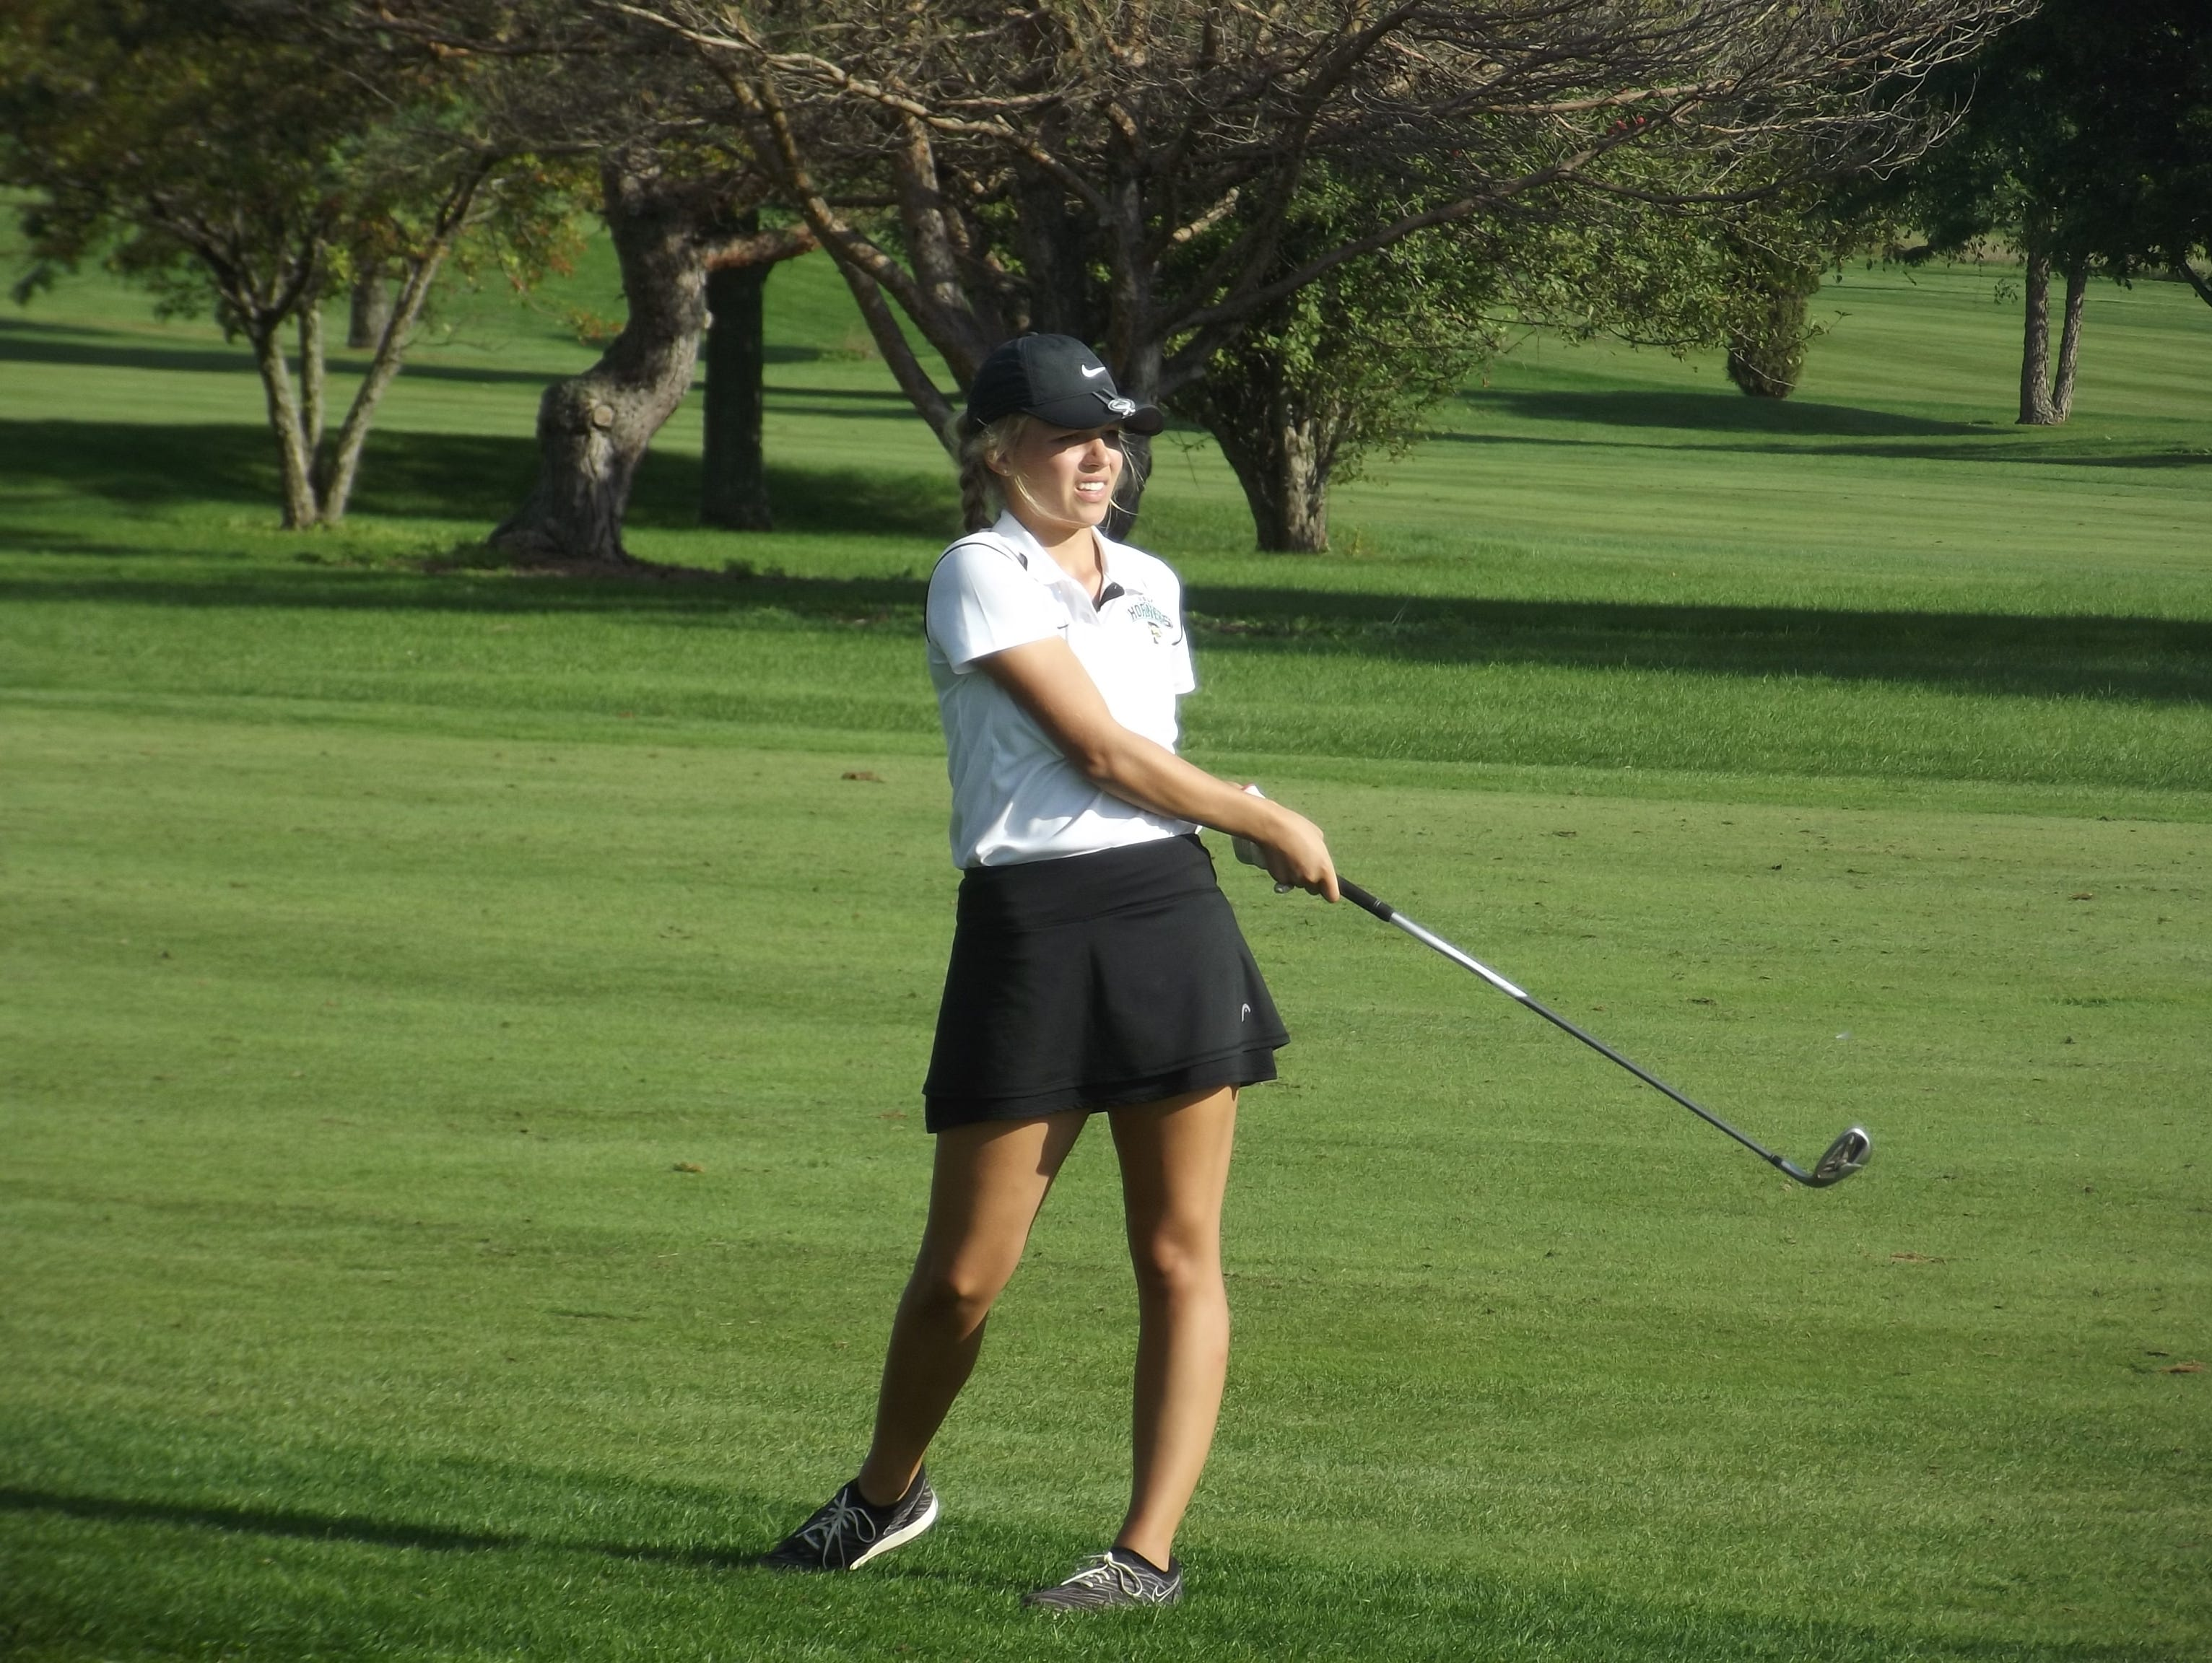 Green Bay Preble senior Sydney Onesti, shown at the FRCC championship on Sept. 25 at Wander Springs Golf Course in Greenleaf, is one three players for the Hornets this season that has posted the team's best score at a meet.